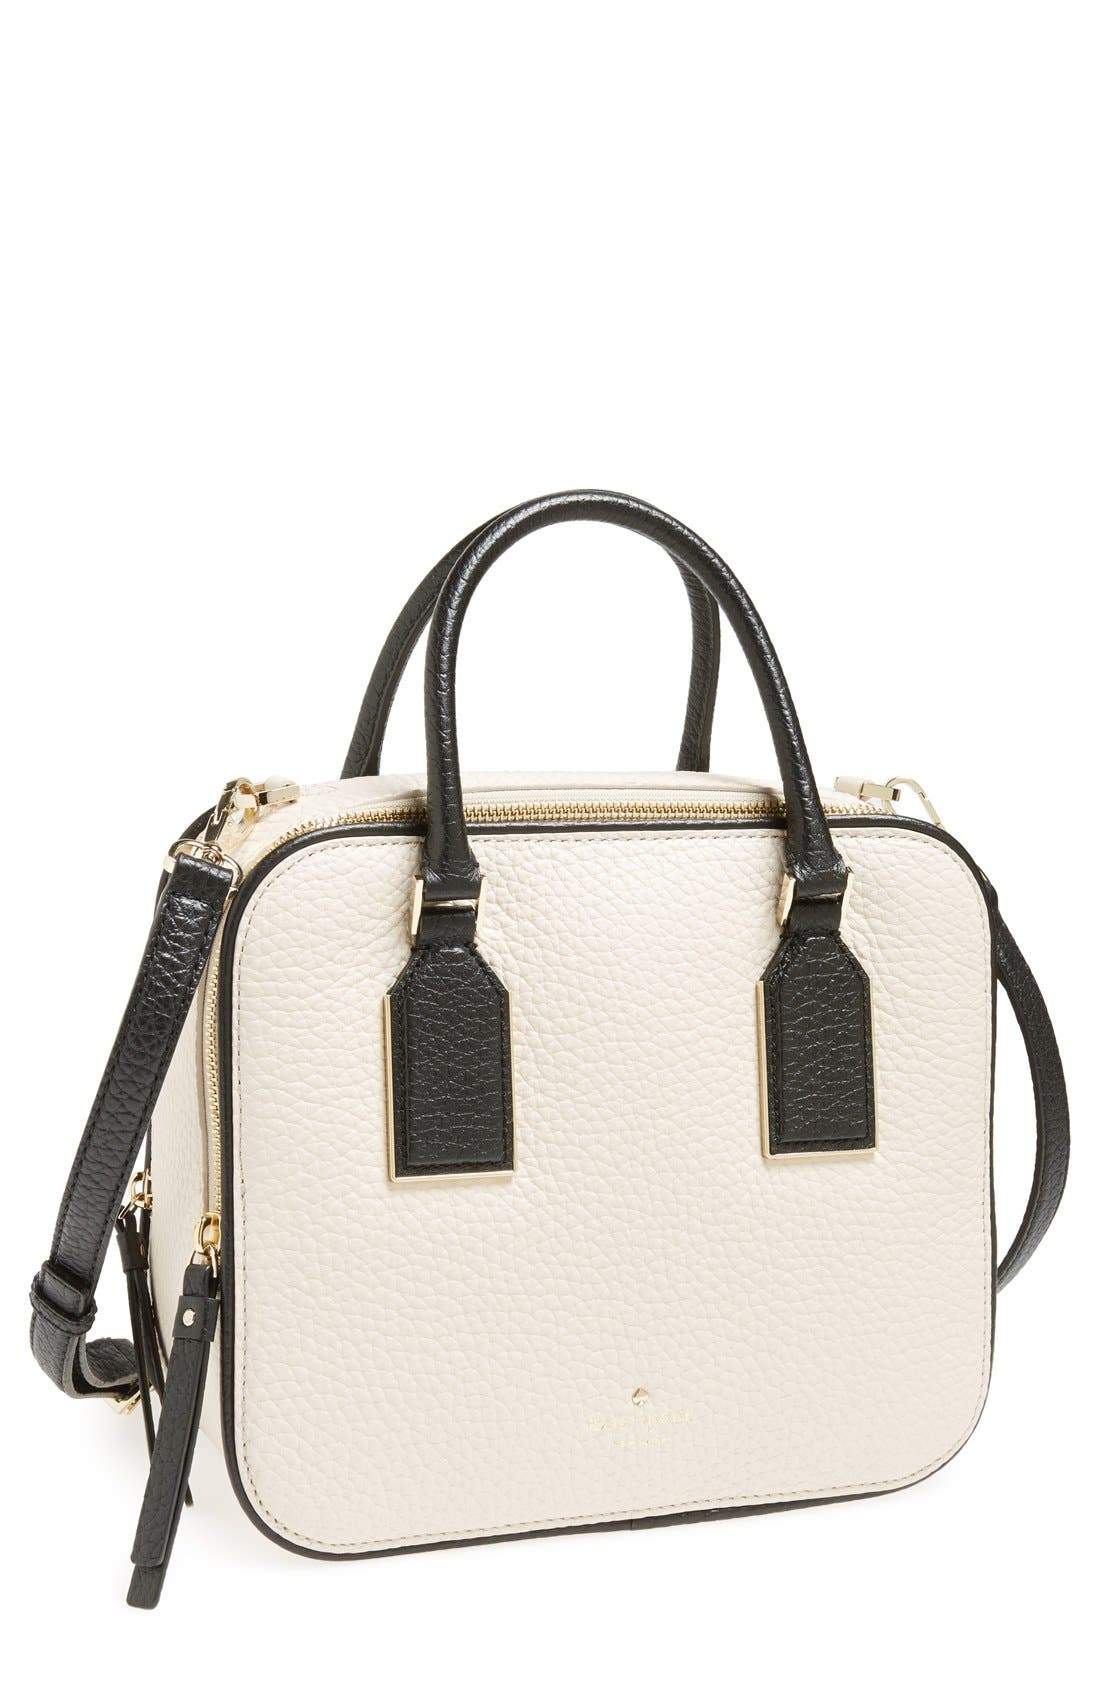 Alternate Image 1 Selected - kate spade new york 'cecil court - elia' leather satchel